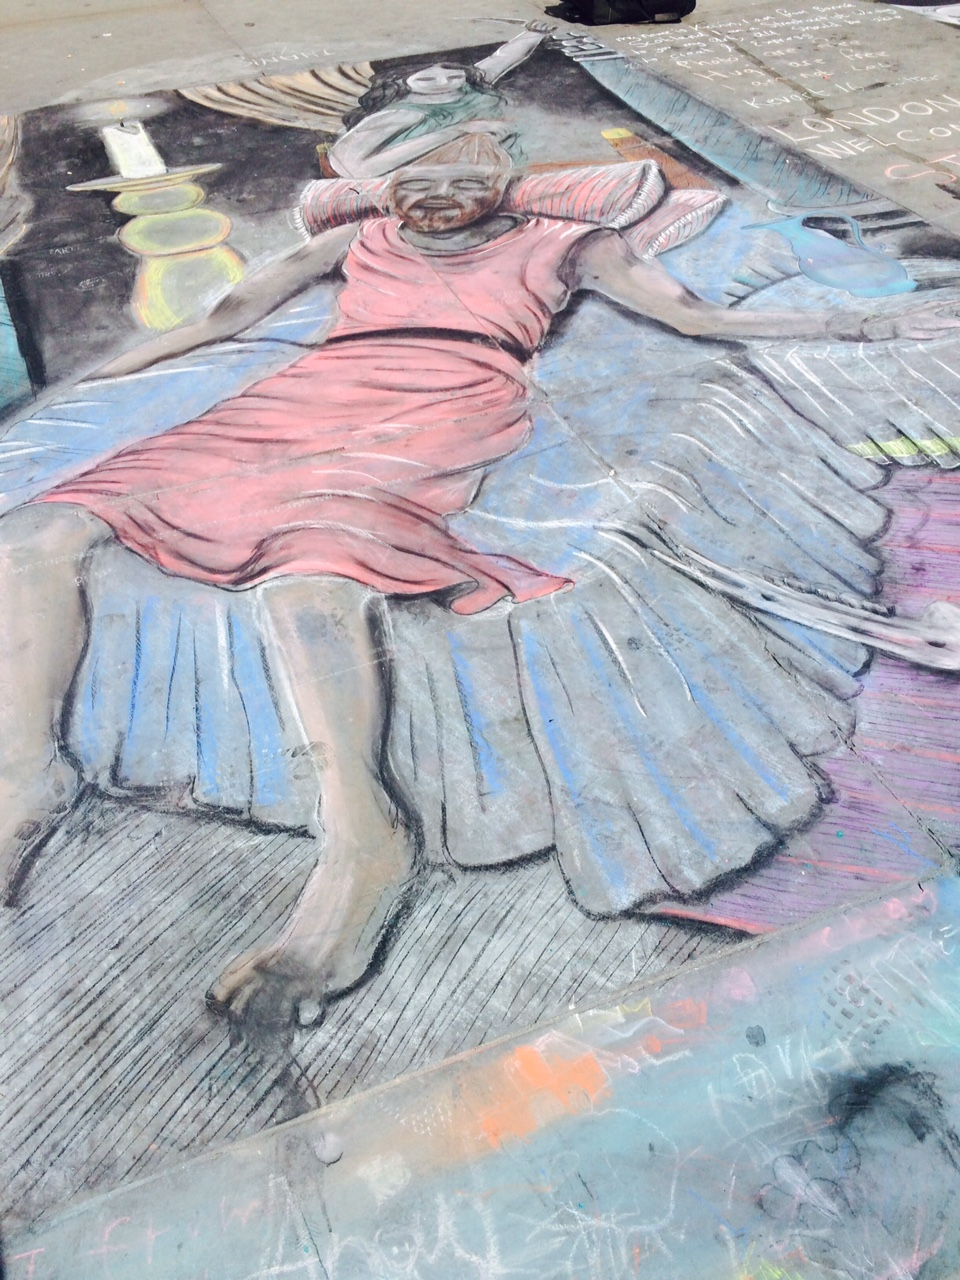 Street art by homeless man outside The National Gallery